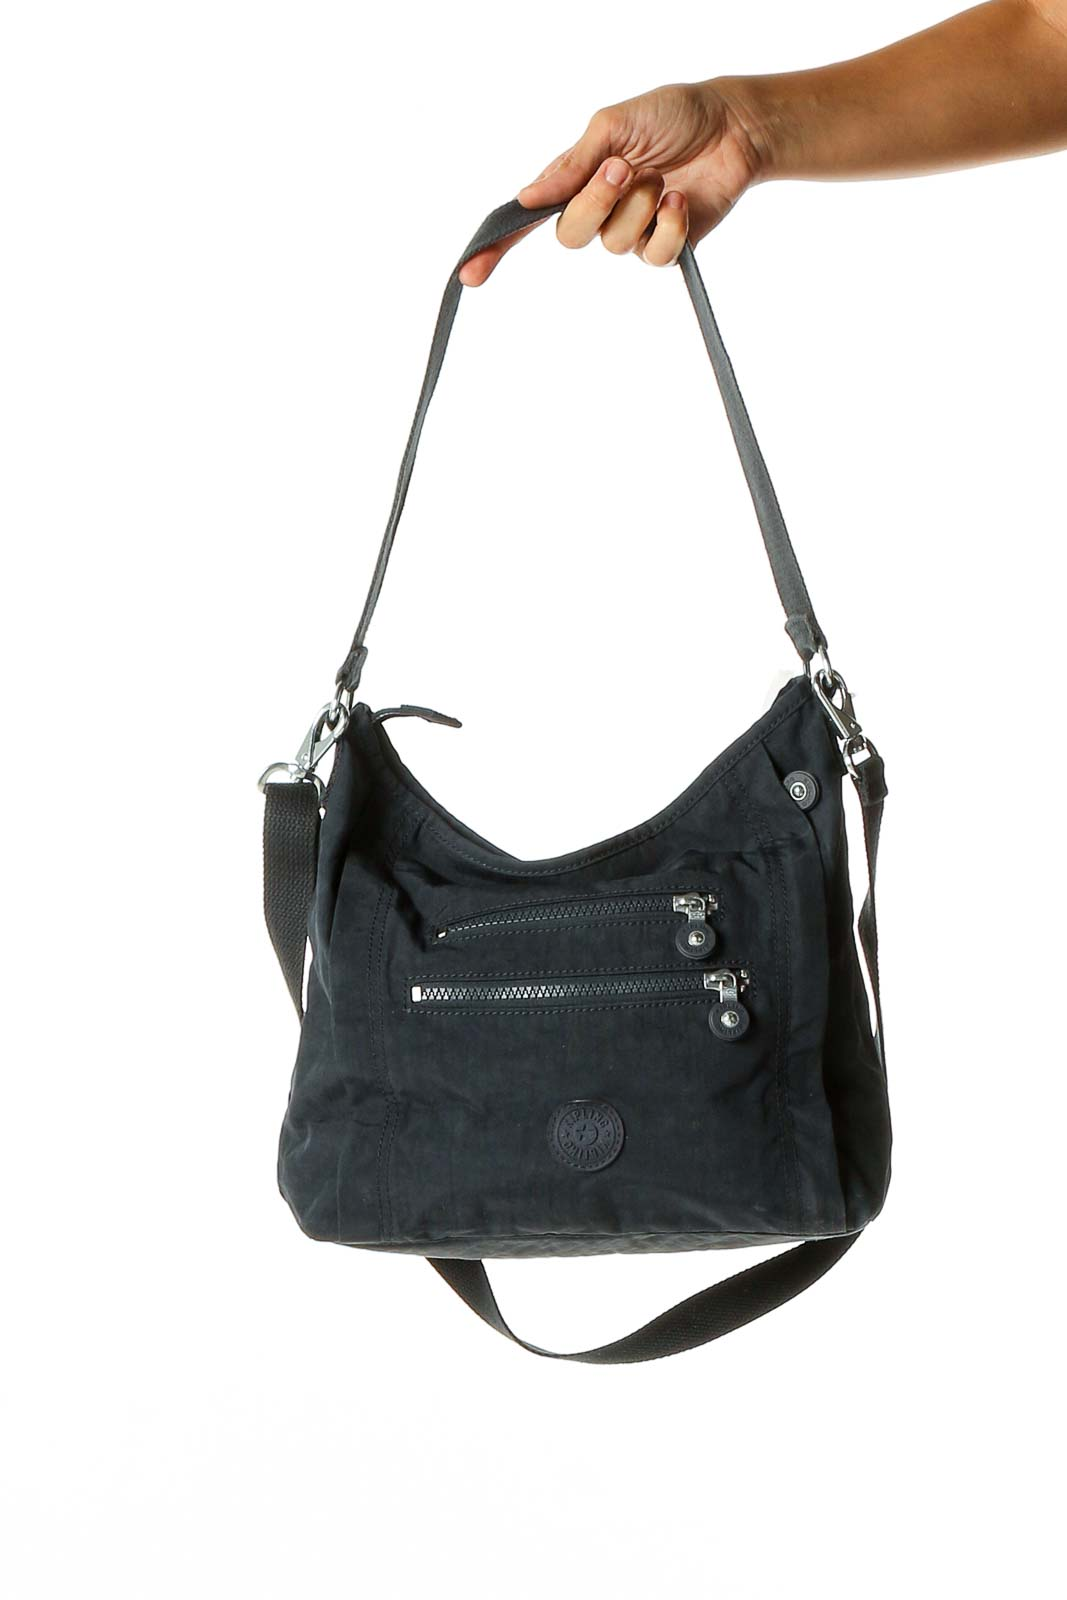 Blue Shoulder Bag Front